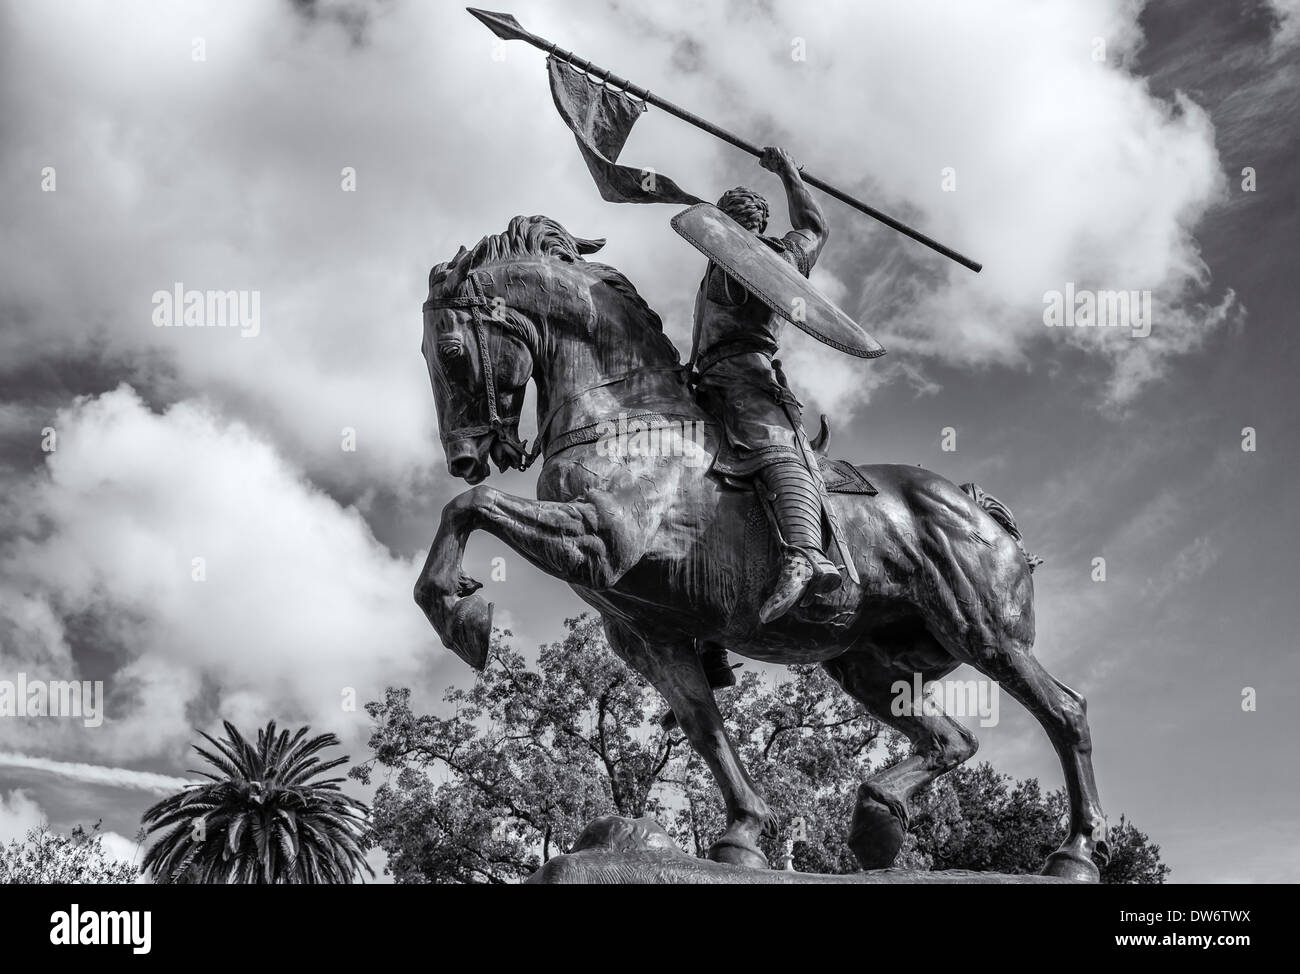 El Cid Statue at Balboa Park. In black and white. San Diego, California, United States. - Stock Image